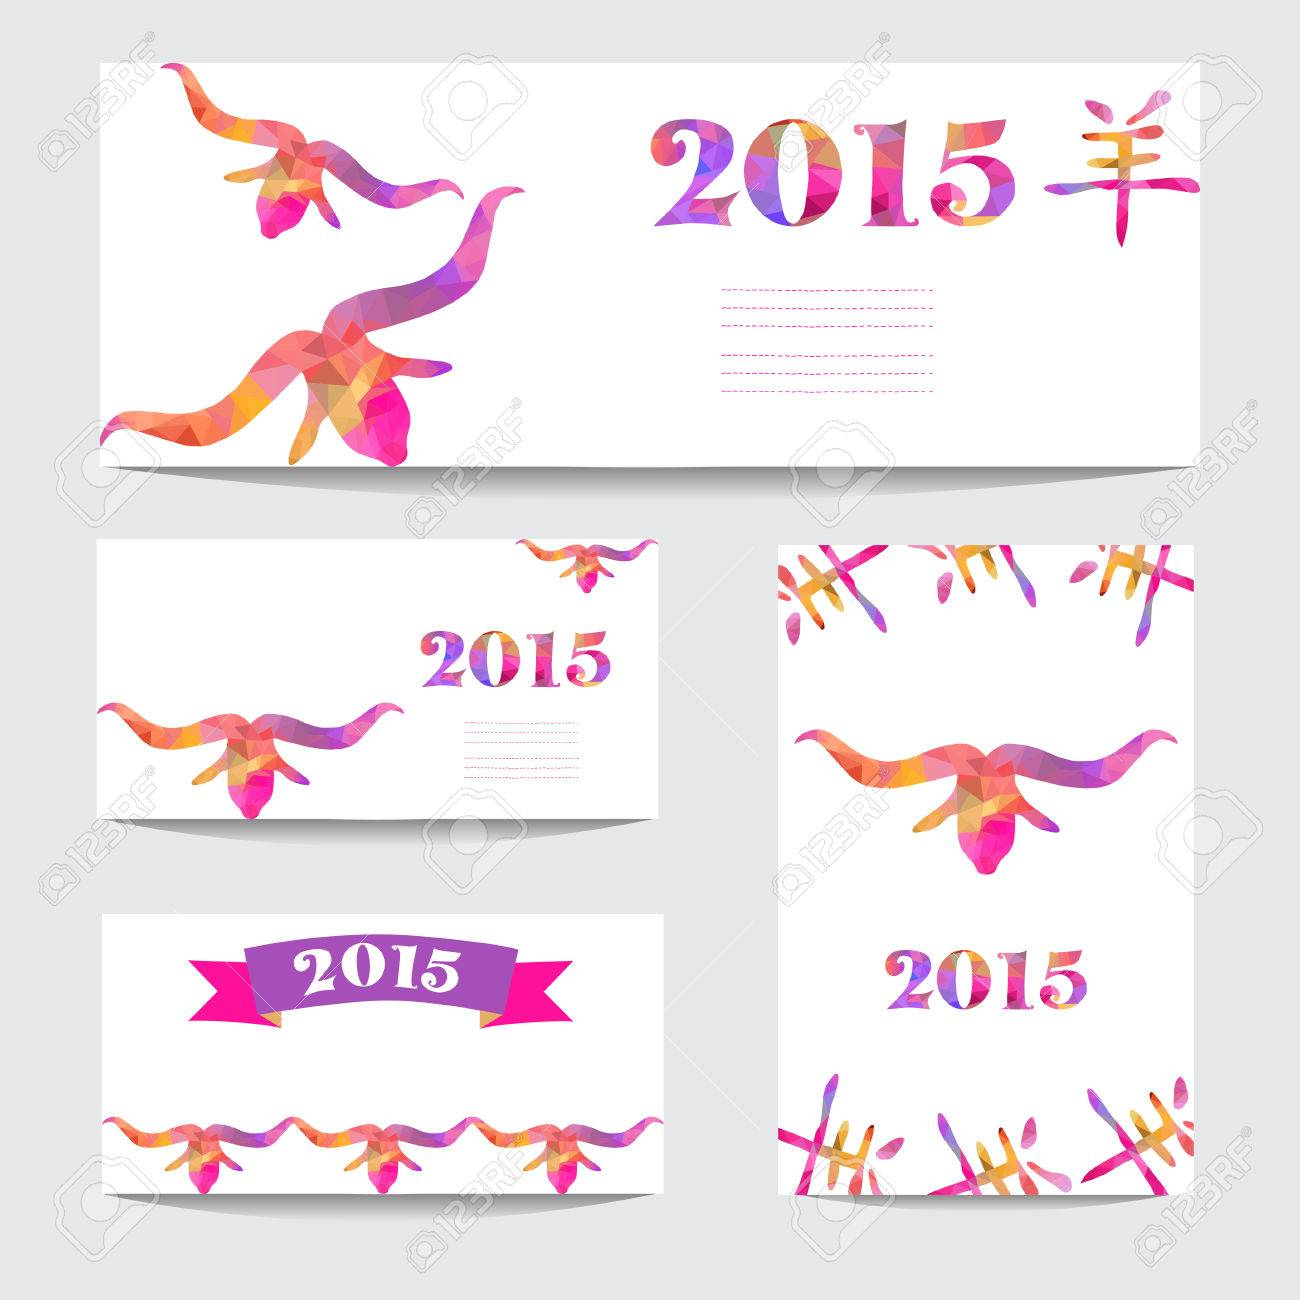 New Year 2015 Cards Set With Goat Heads Made By Colorful Geometric ...